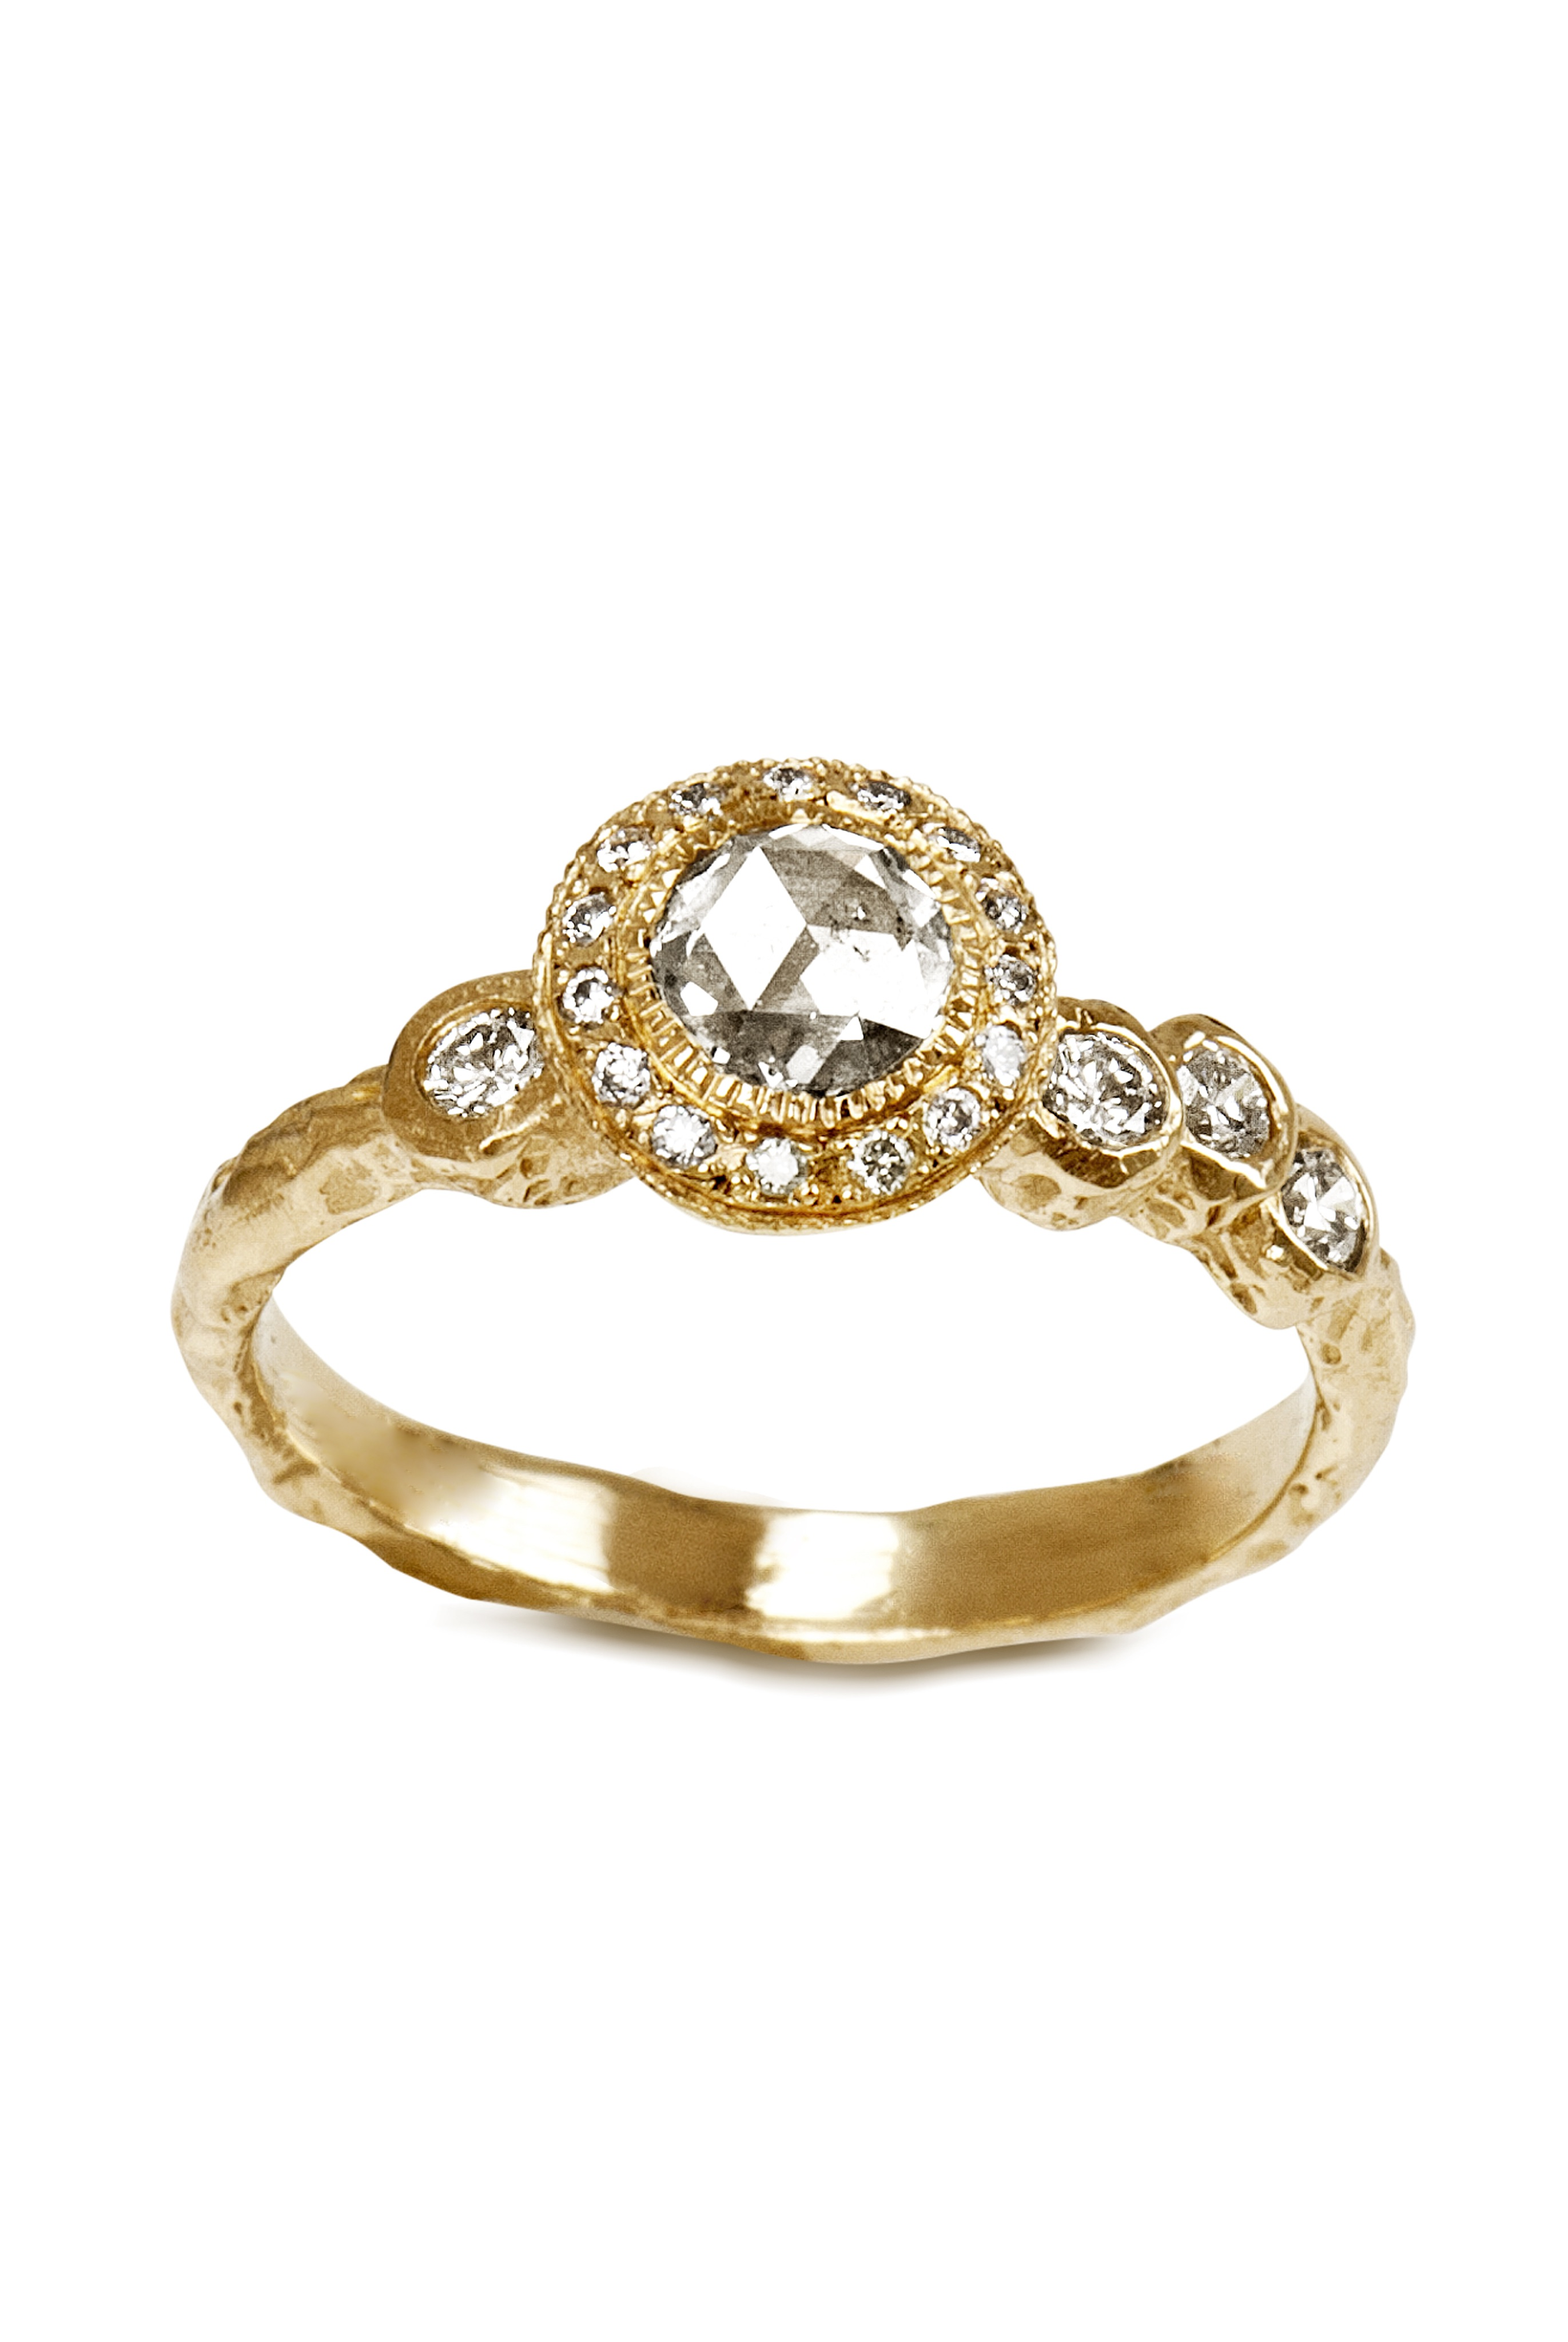 The Jewel - Just Jules - Lookbook - Gold and Diamond Studded Ring